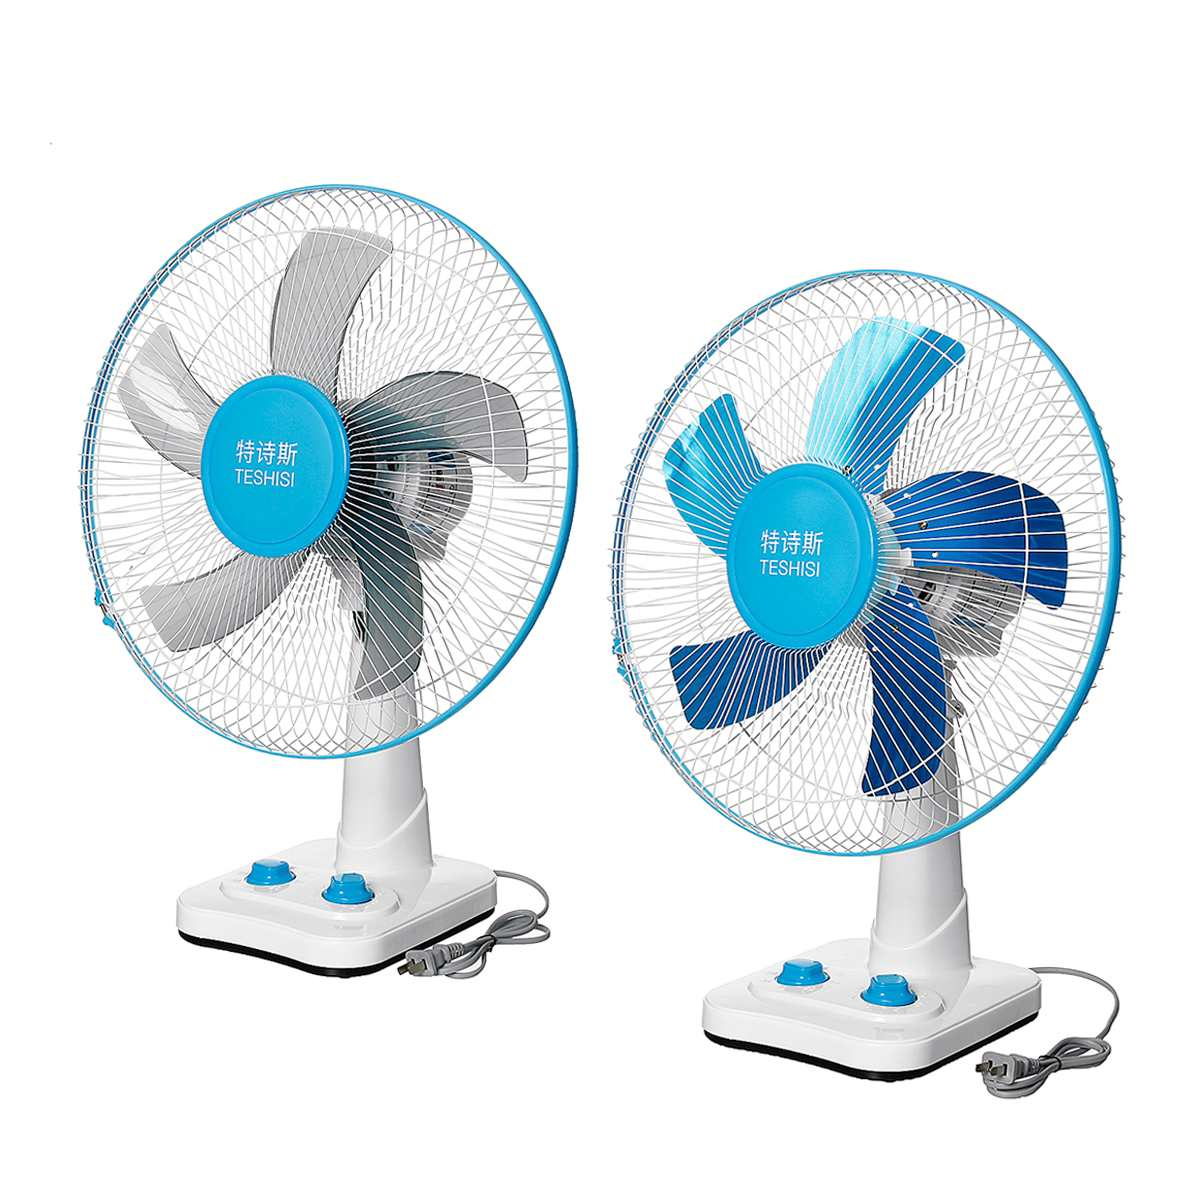 16 Inch 5 Blades Electric Floor Standing Fan 3 Speed Cooling Wind Floor Mute Fan Portable Home Dorm Air Conditioning Appliance